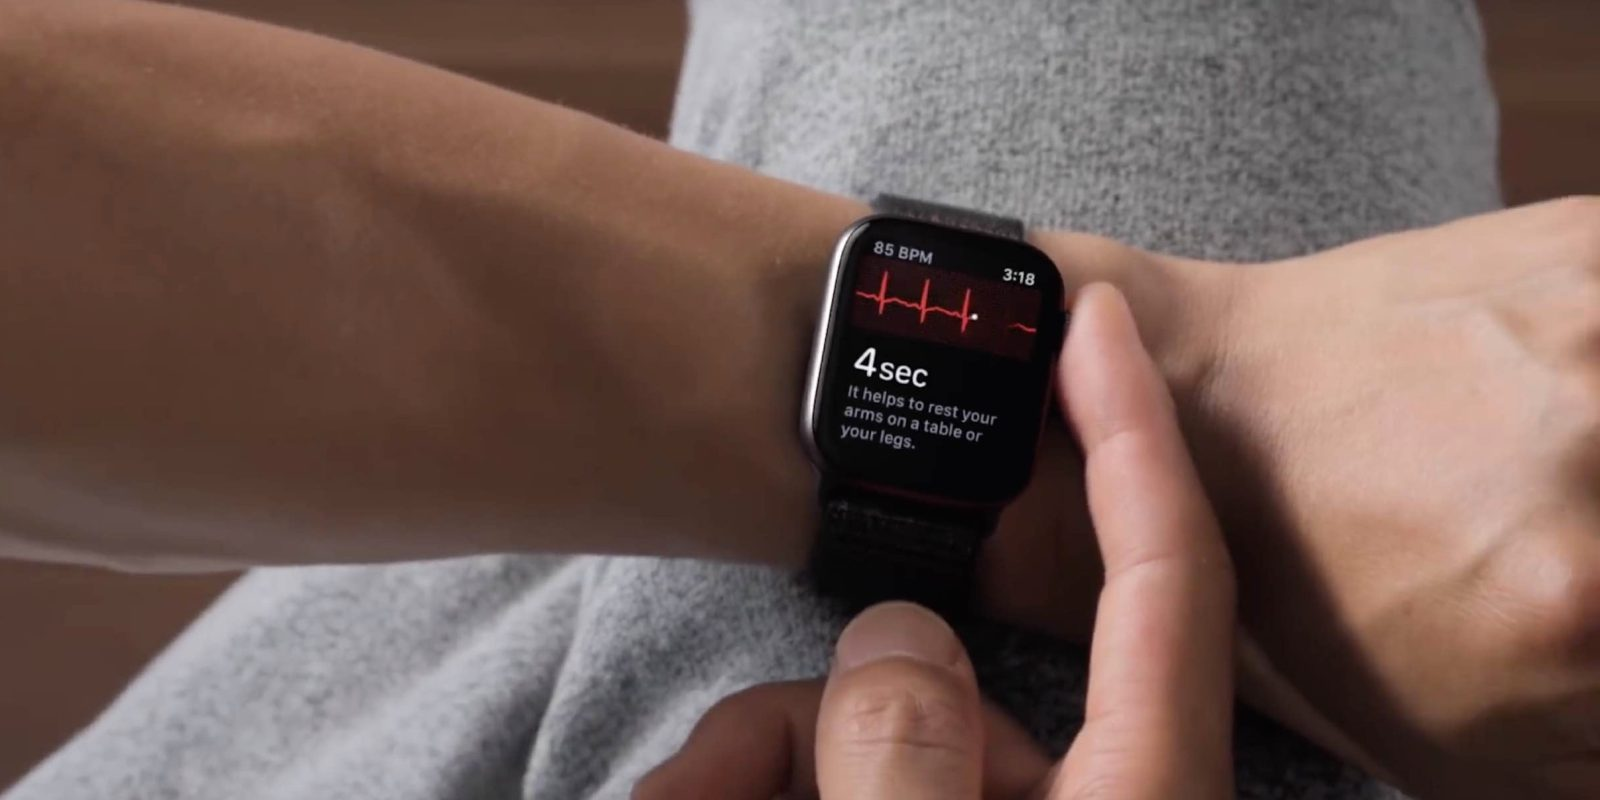 Apple execs explain how Apple Watch became health-focused and what the future could hold